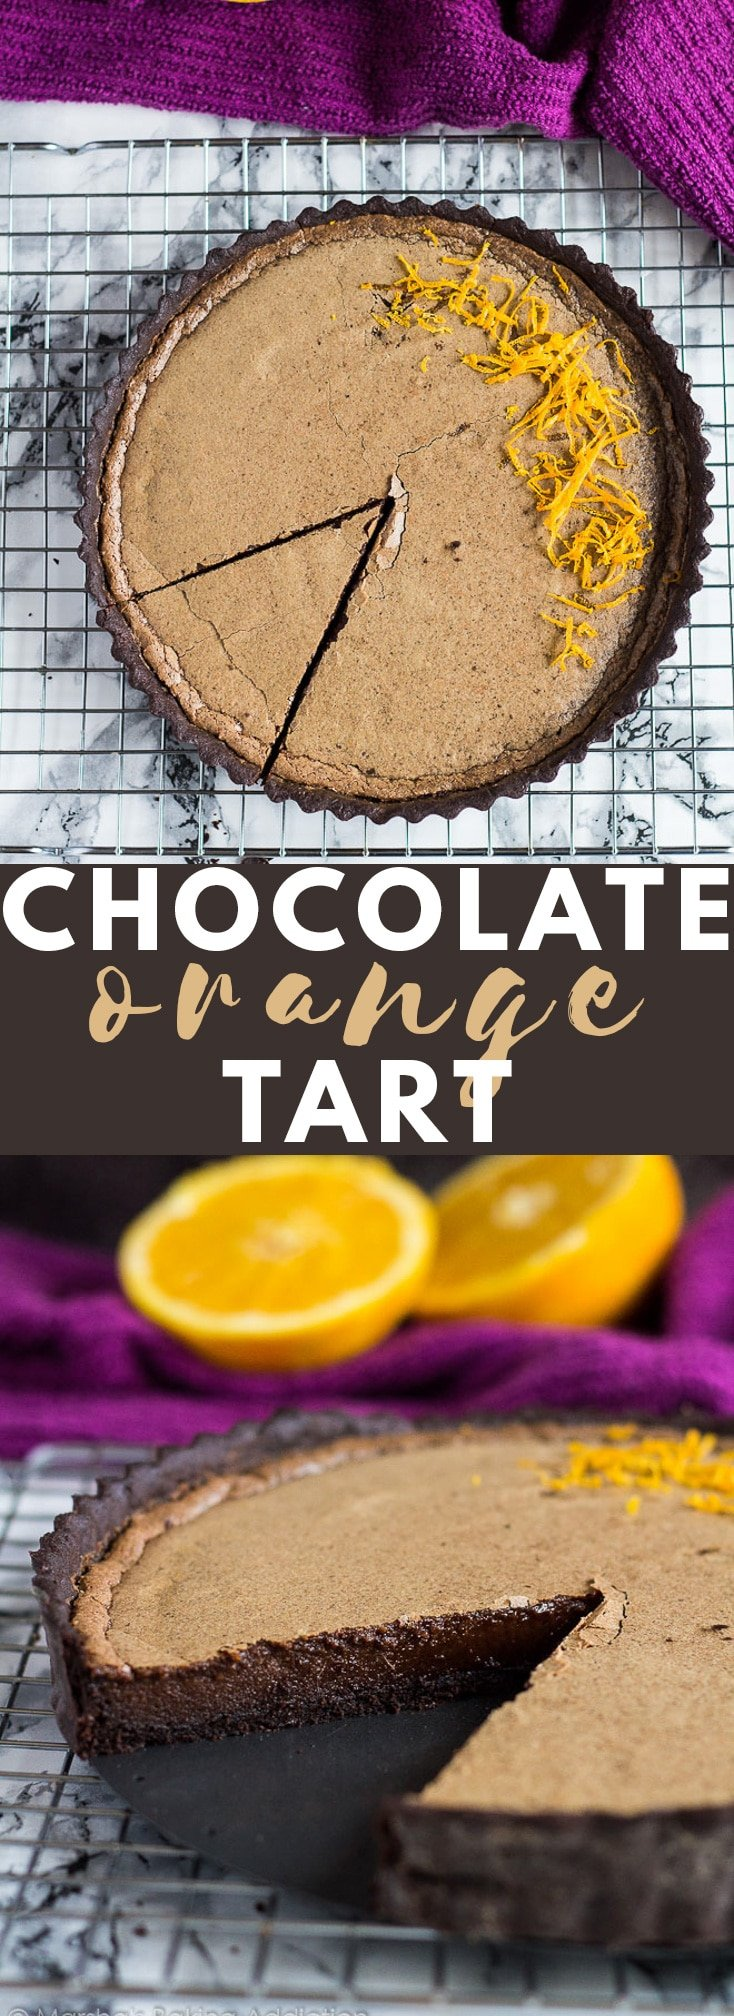 Dark Chocolate Orange Tart- A buttery, flaky chocolate orange-infused crust filled with a luxuriously creamy chocolate orange pudding! #chocolate #orange #tartrecipes #chocolaterecipes